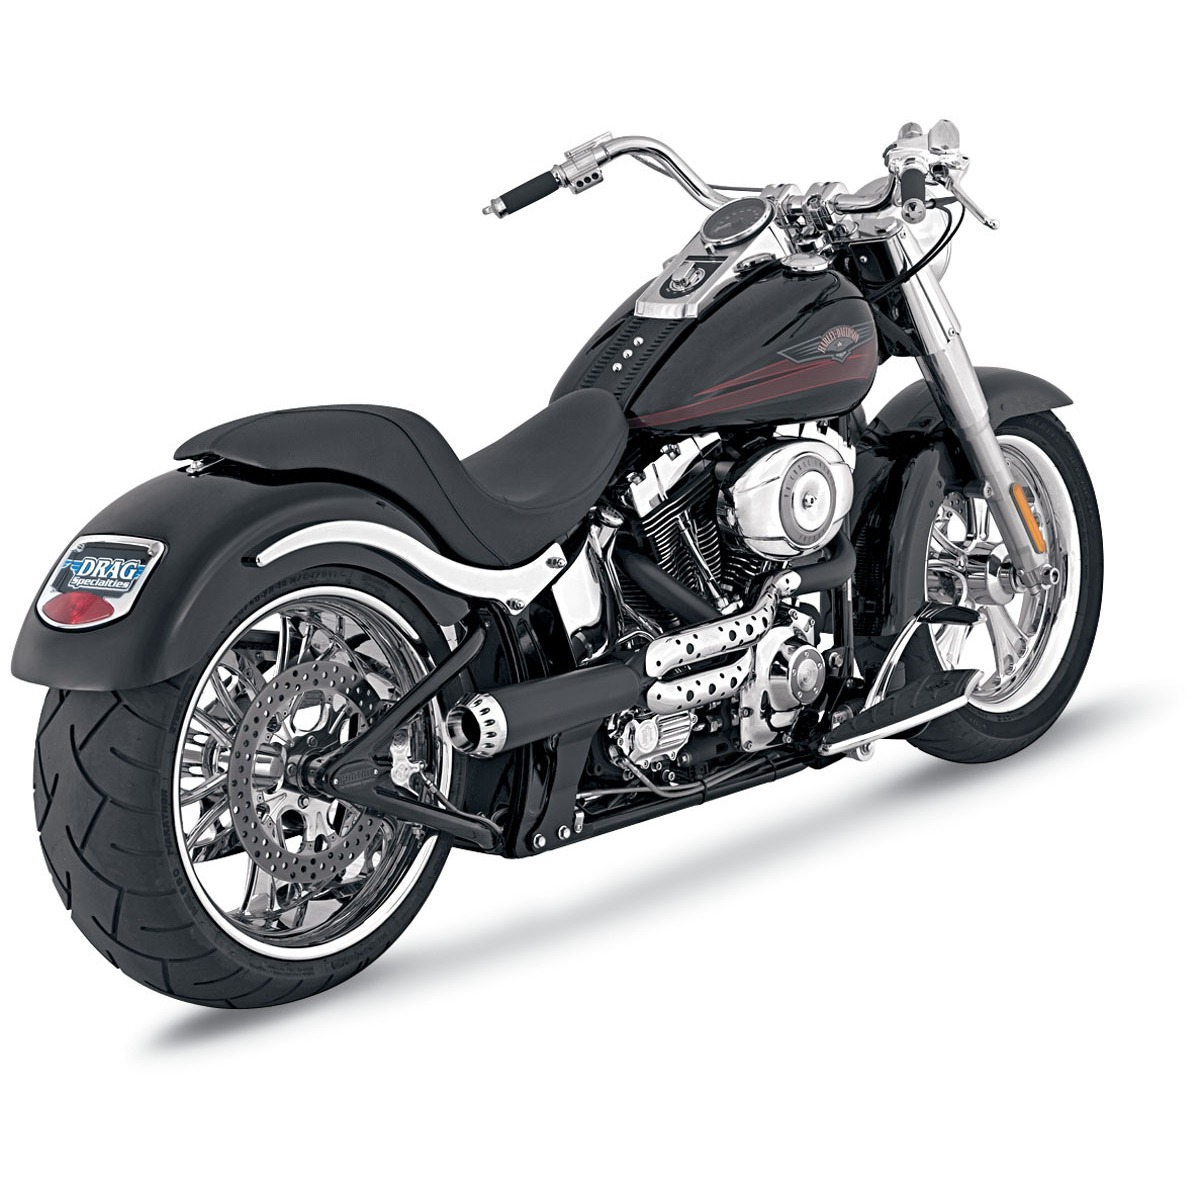 Vance & Hines - RSD:Roland Sands Design - Tracker 2-into-1 - 86-11 Softail